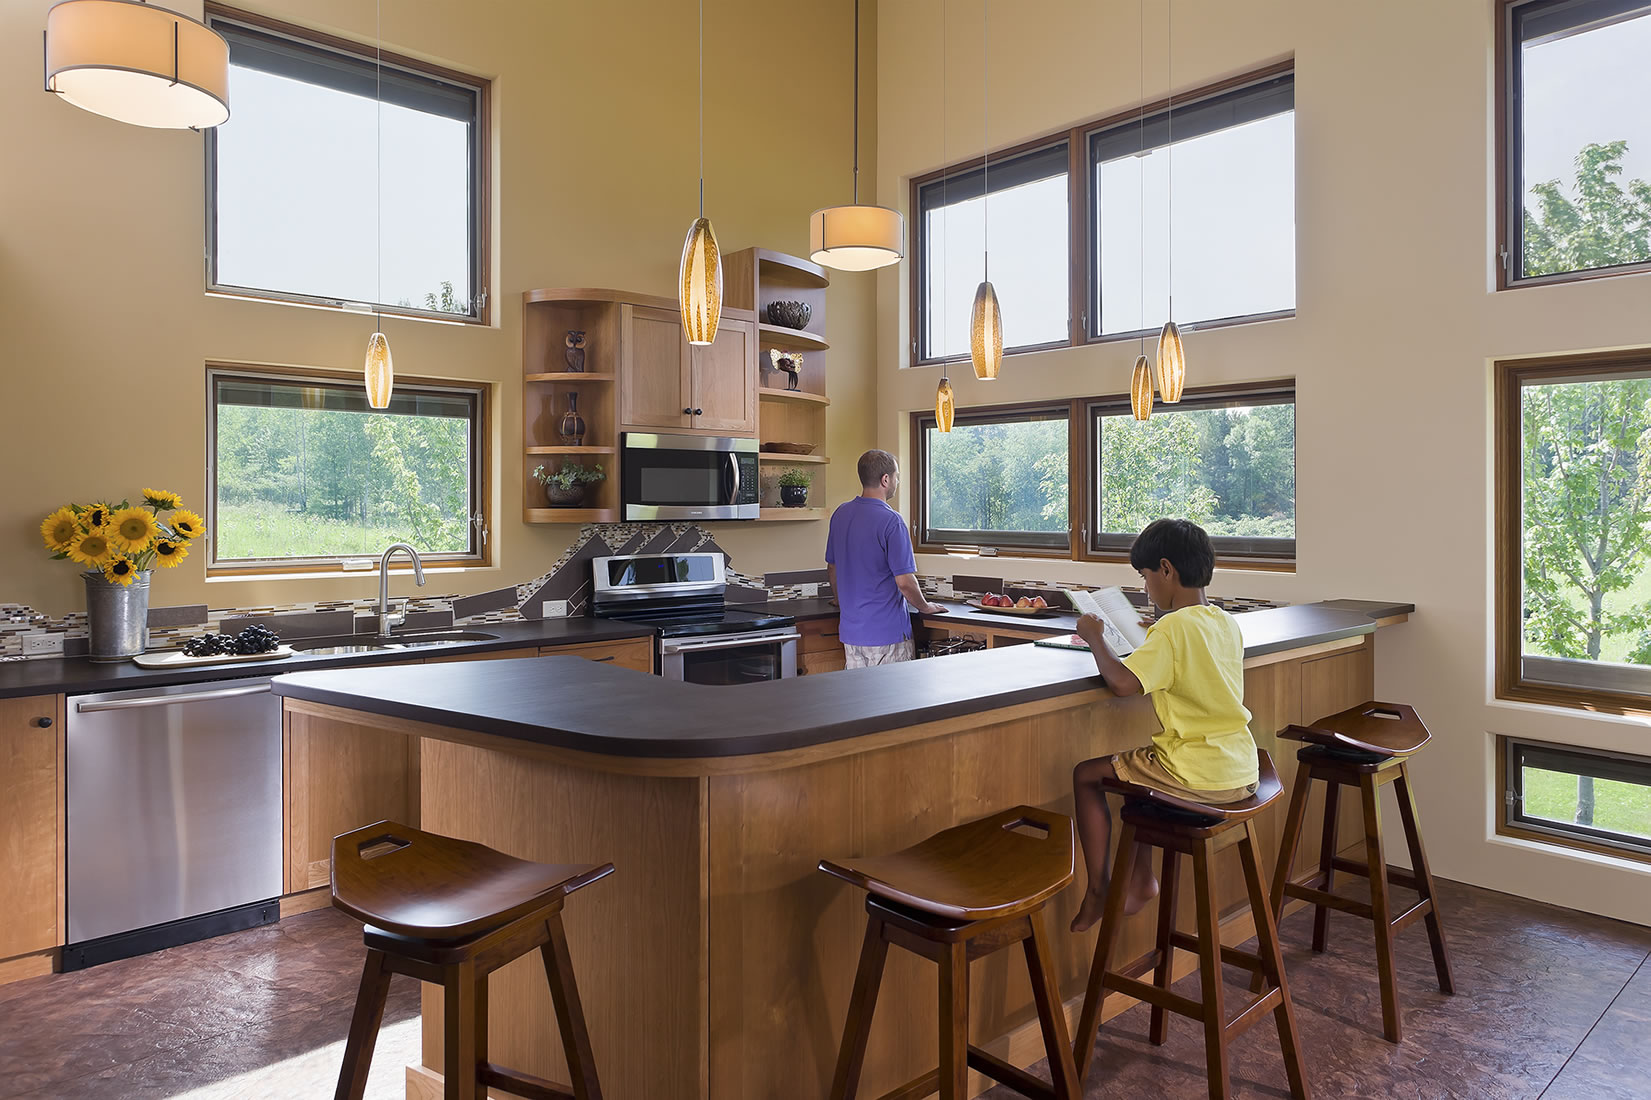 surprising kitchen lots windows   Andrea Rugg Photography   Recent Photography Work